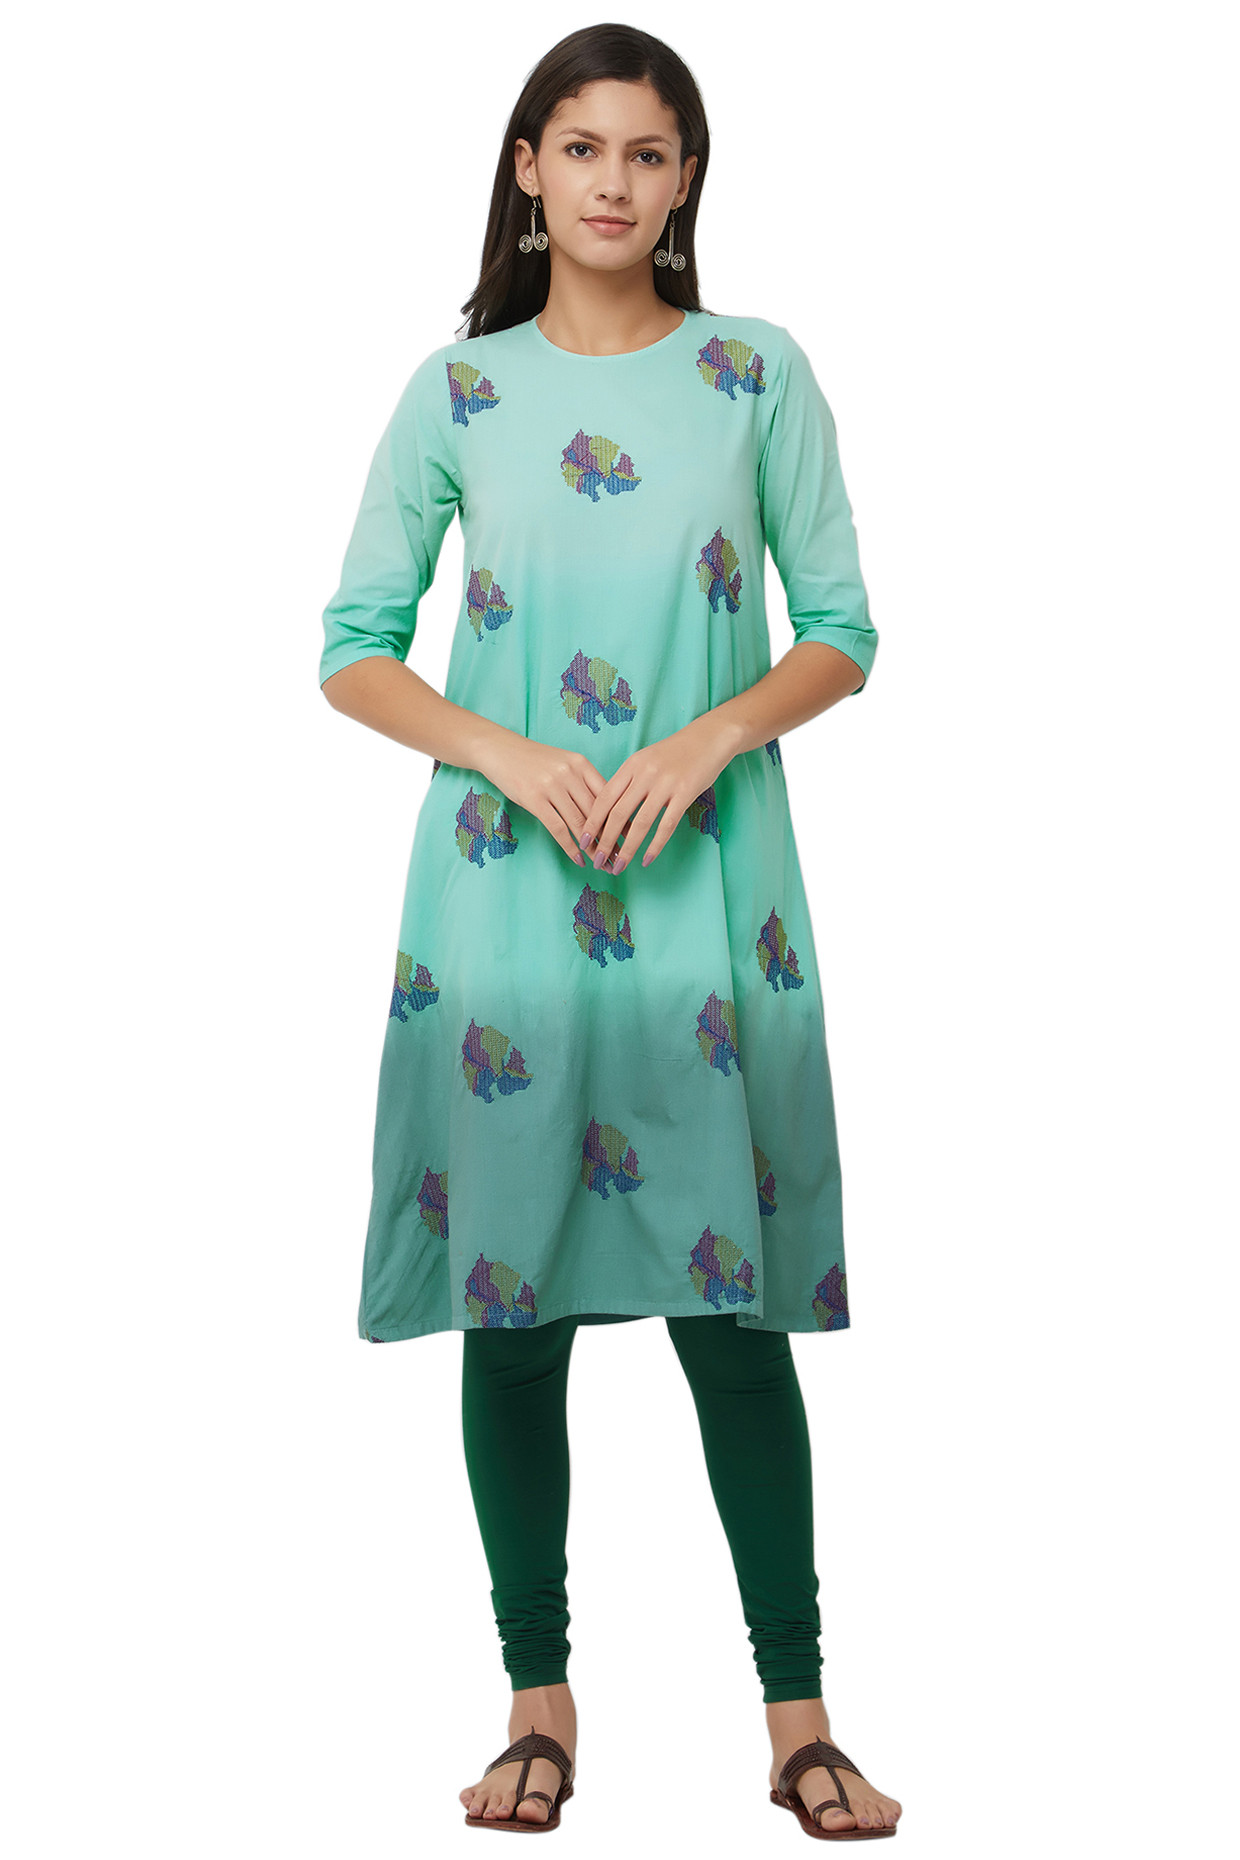 Blue Tie Dyed Cotton Kurti With Embroidered Motifs by House Of Idar